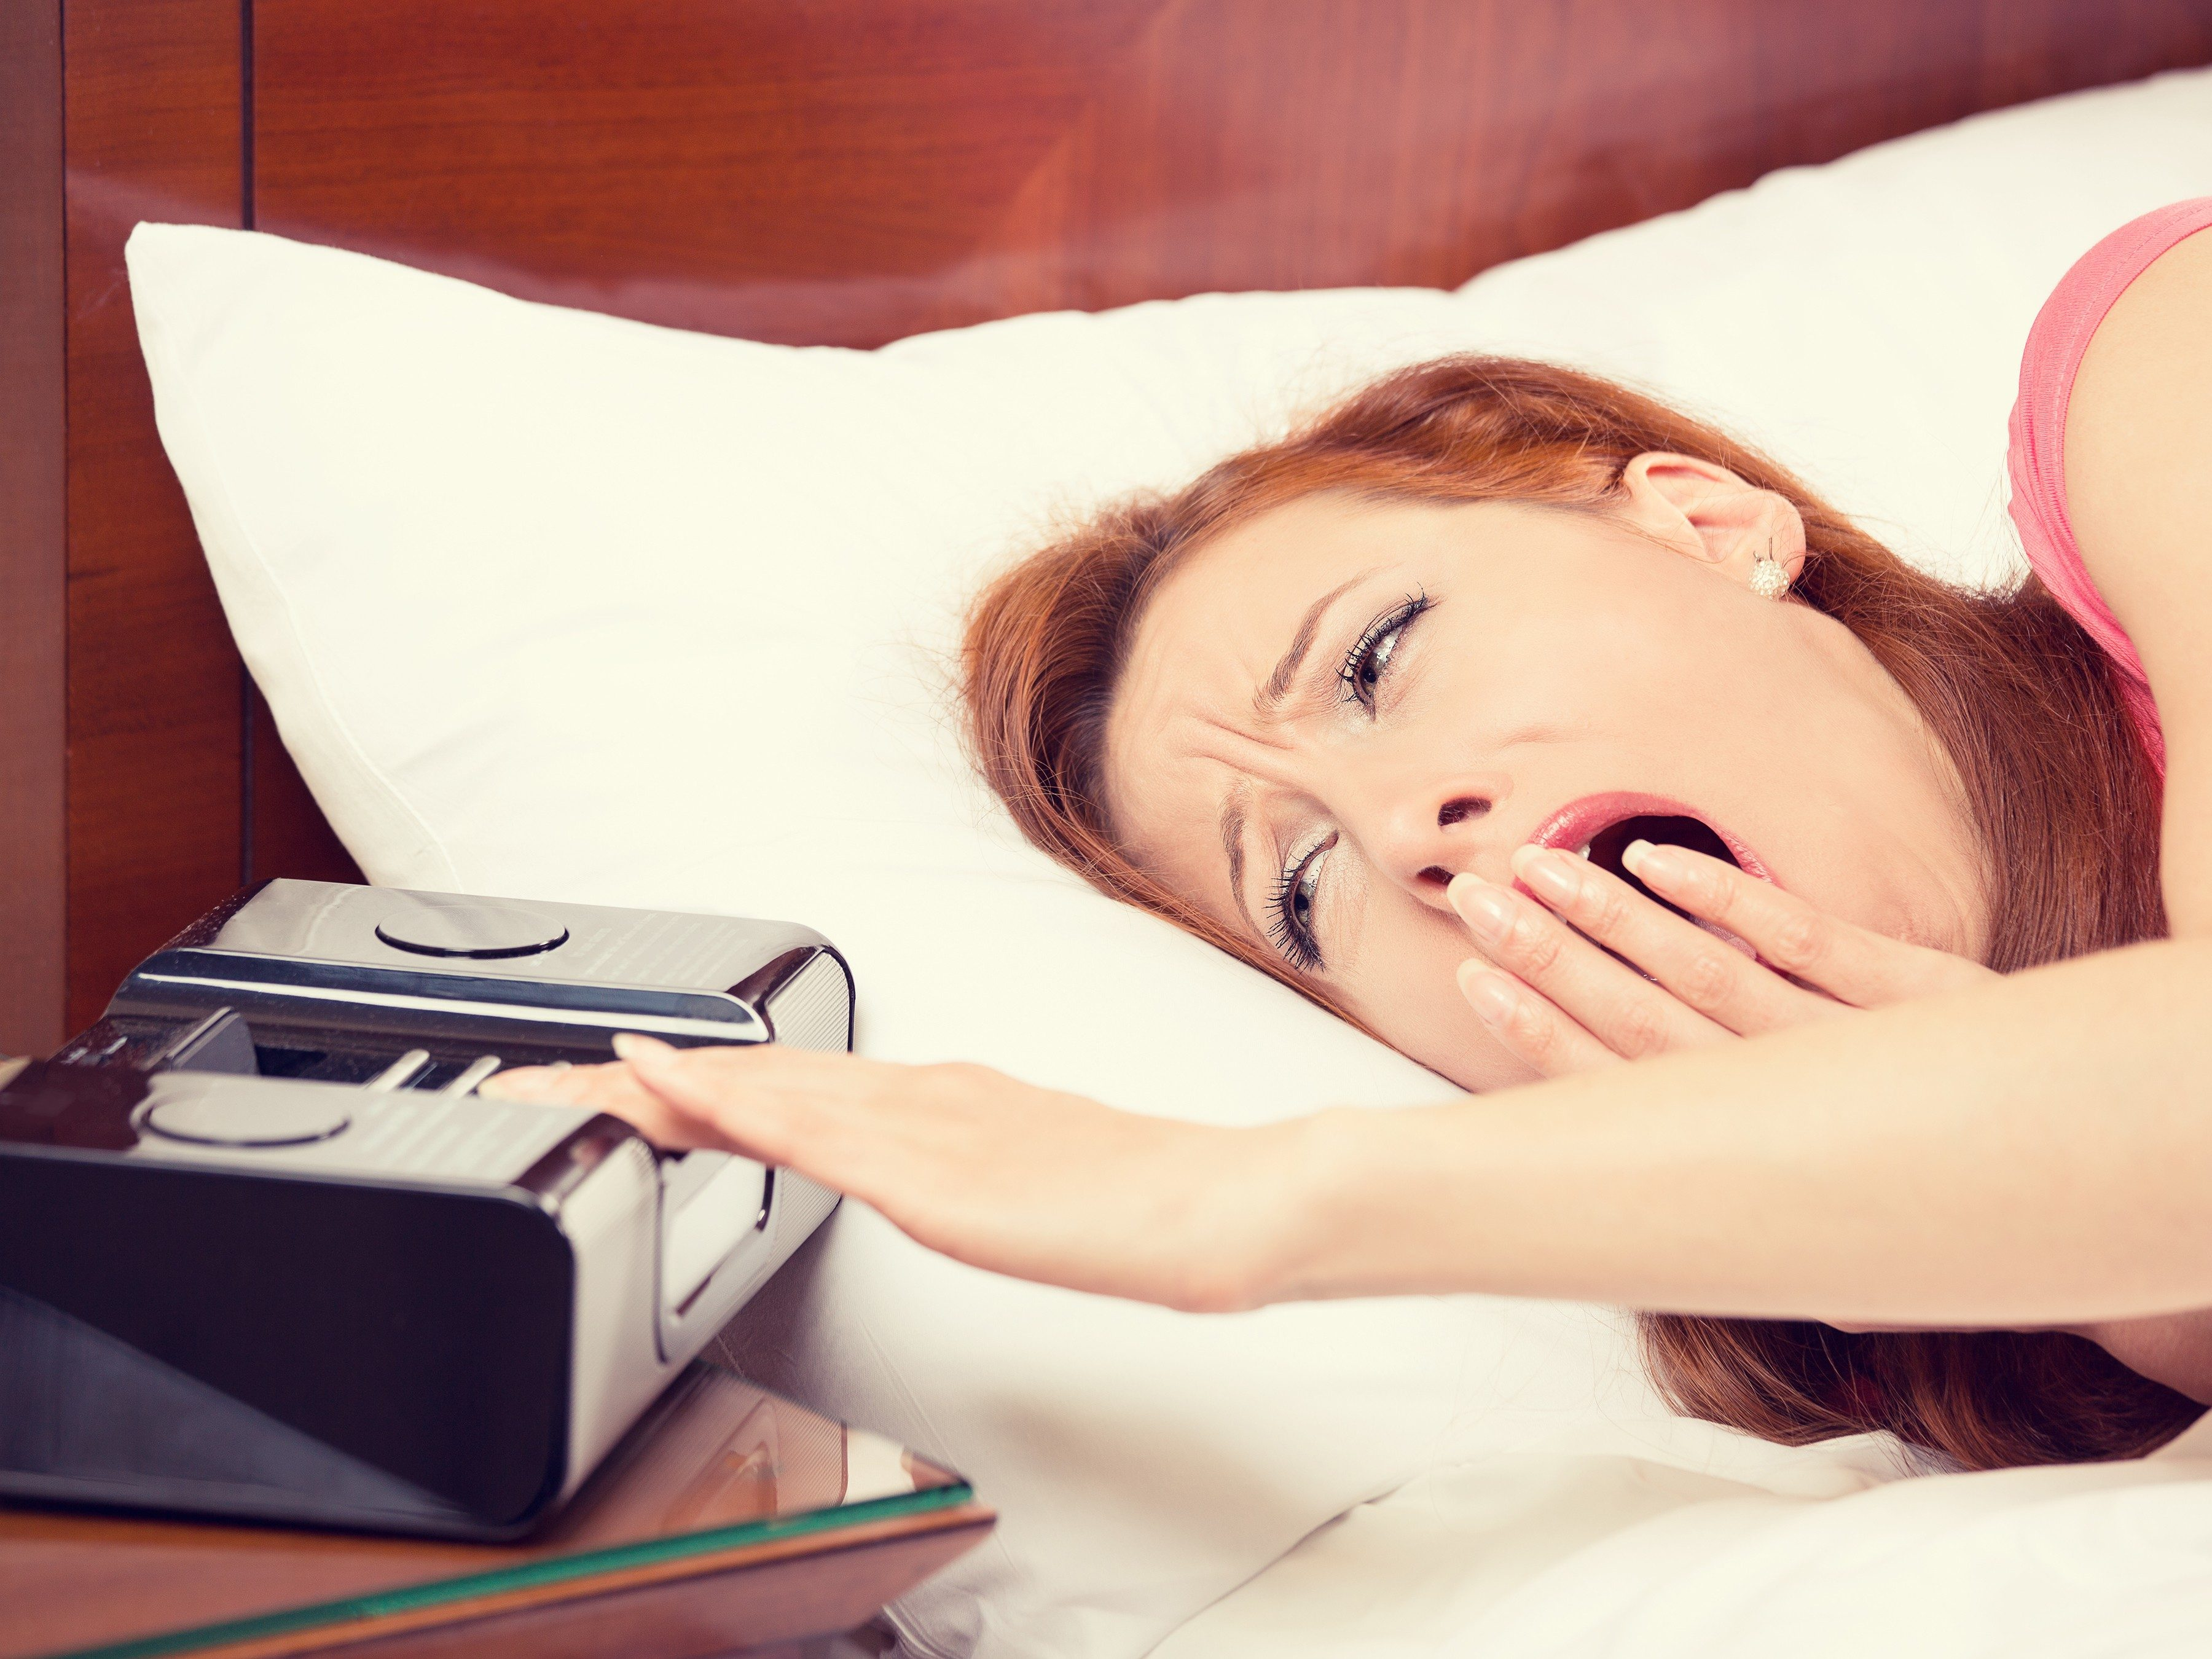 3. Prevent jet lag by recharging with a nap